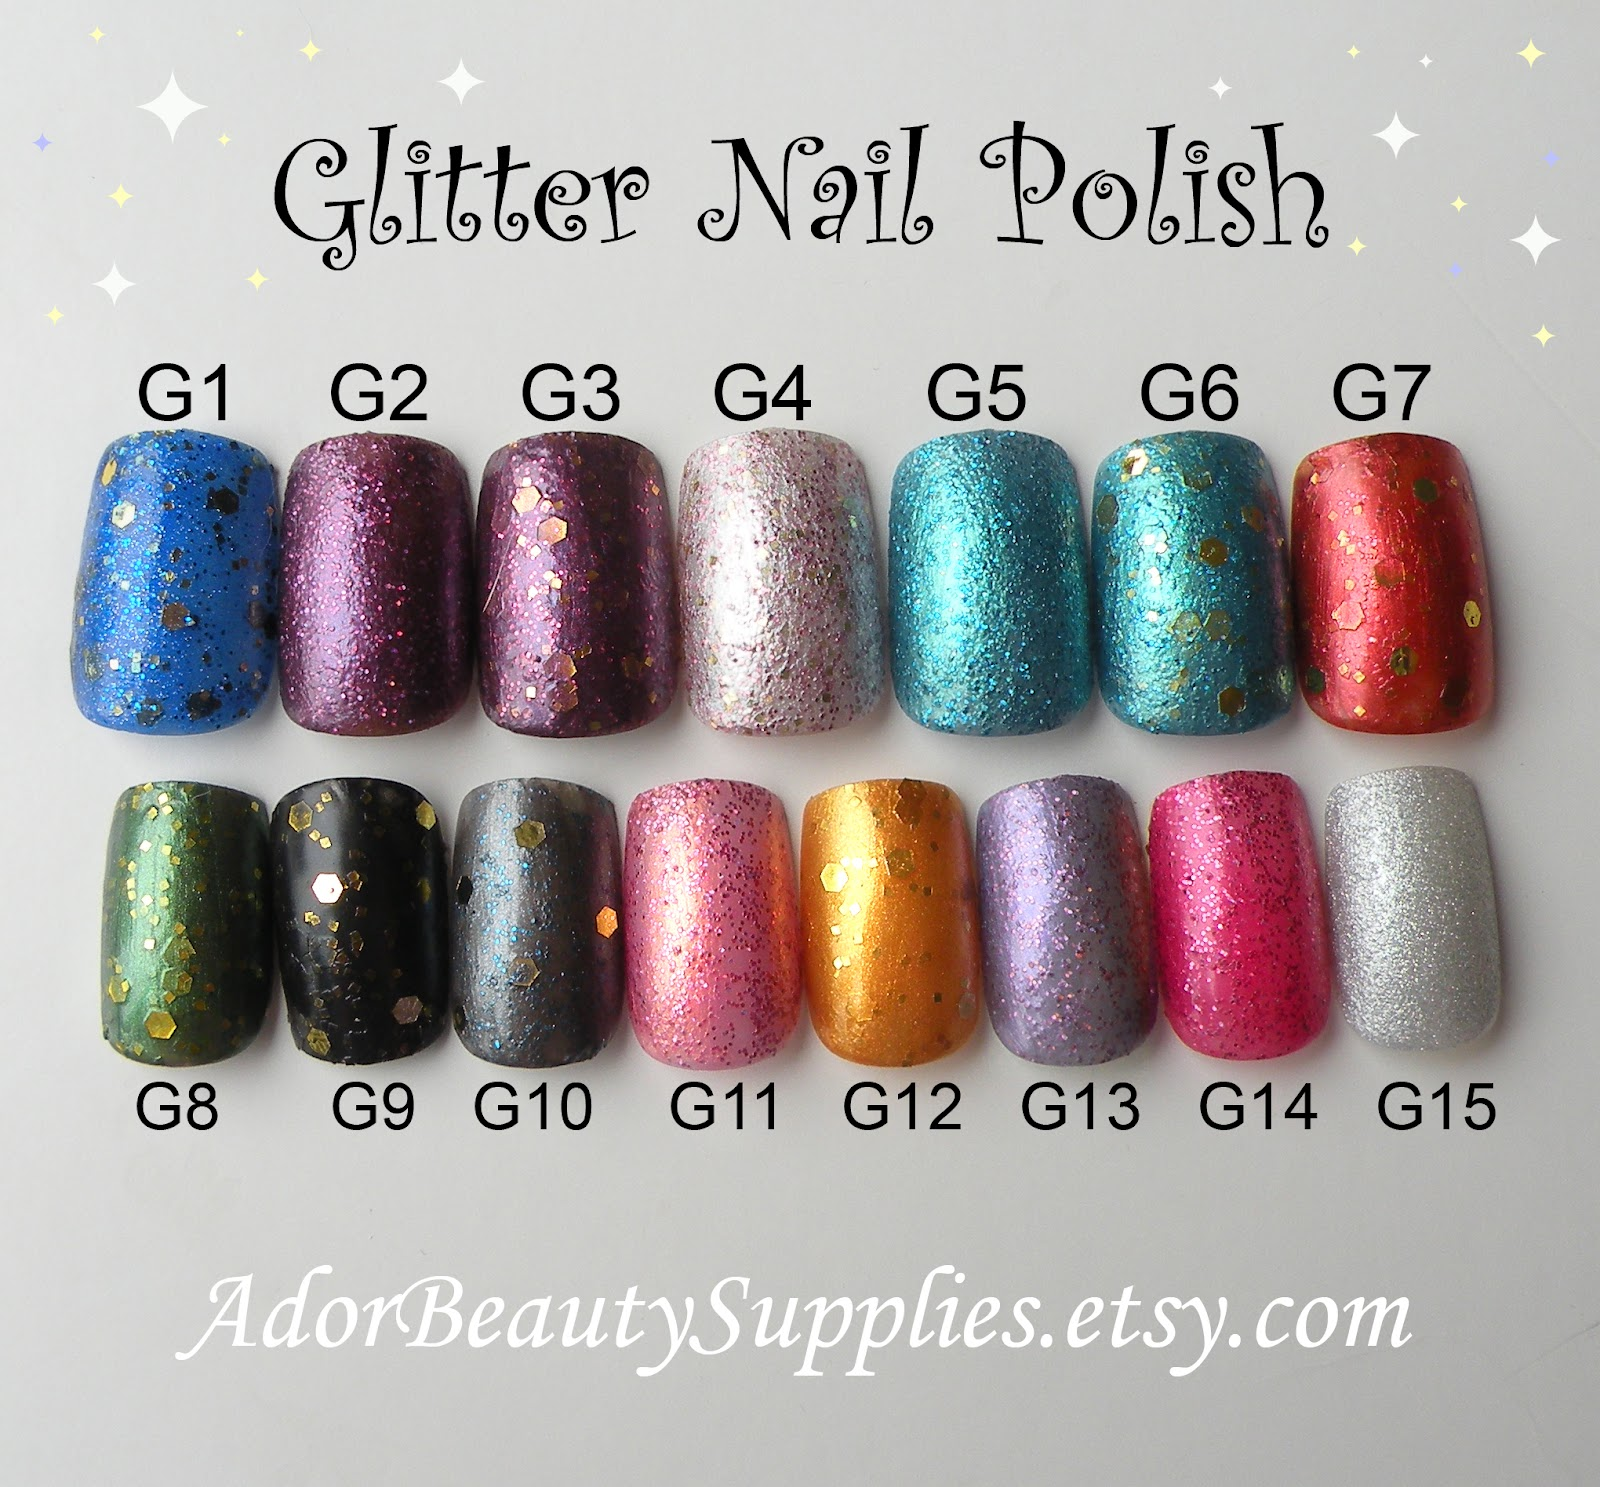 A\'dor Beauty Supplies: Nail Polish - Now Available in the Shop!